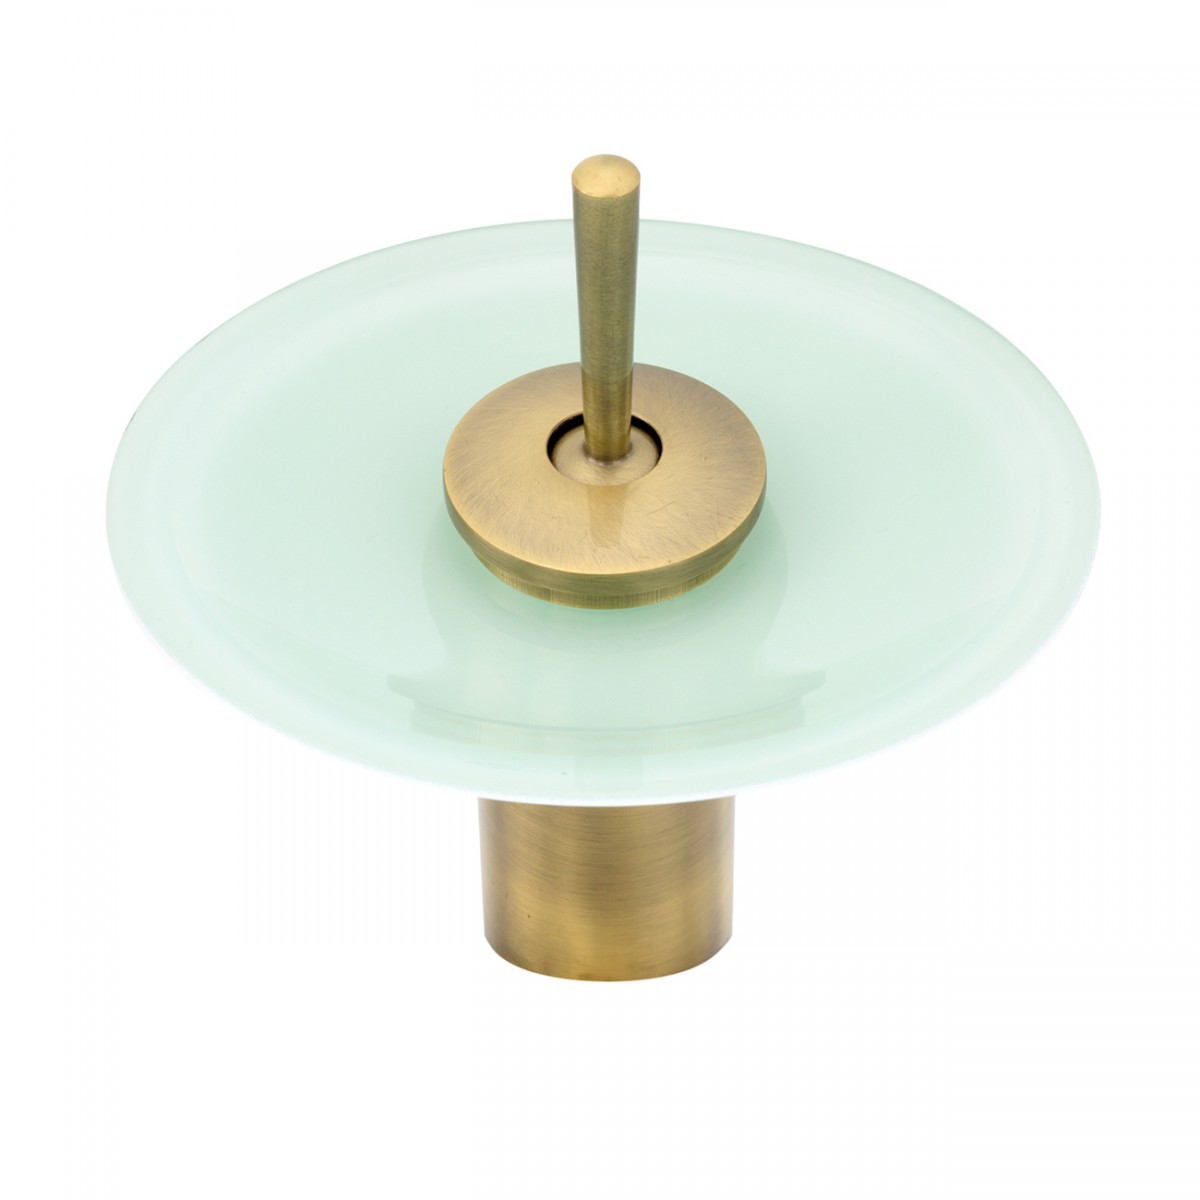 Cast Antique Brass Waterfall Faucet Teal Green 7 H Glass plate Waterfall Sink Faucet Waterfall Bathroom Faucets Glass Disk Faucet